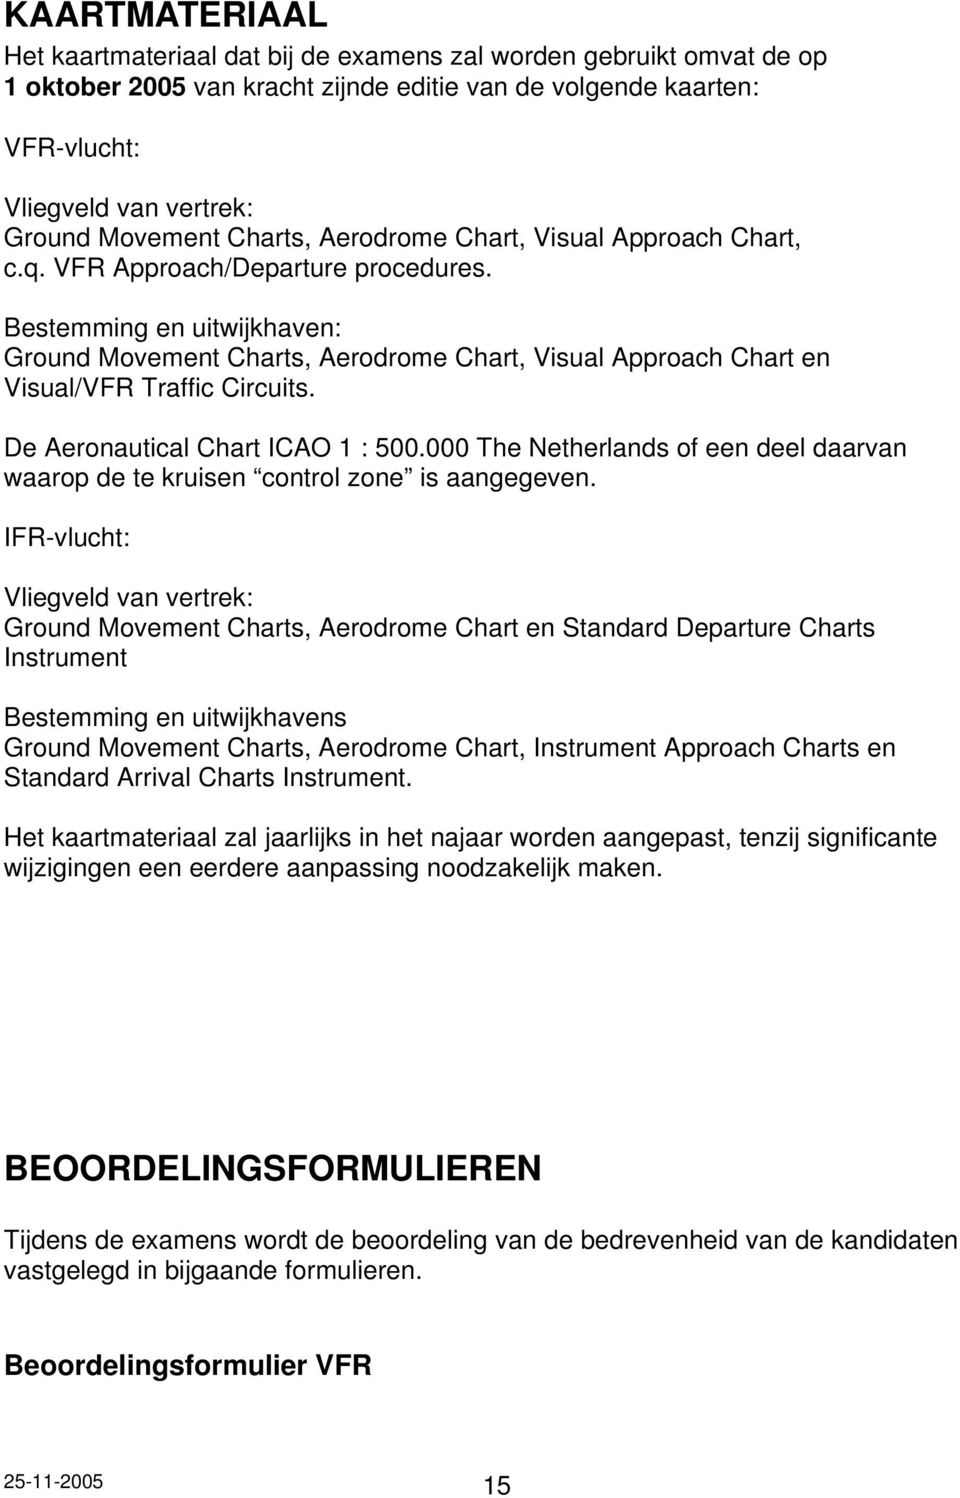 Bestemming en uitwijkhaven: Ground Movement Charts, Aerodrome Chart, Visual Approach Chart en Visual/VFR Traffic Circuits. De Aeronautical Chart ICAO 1 : 500.